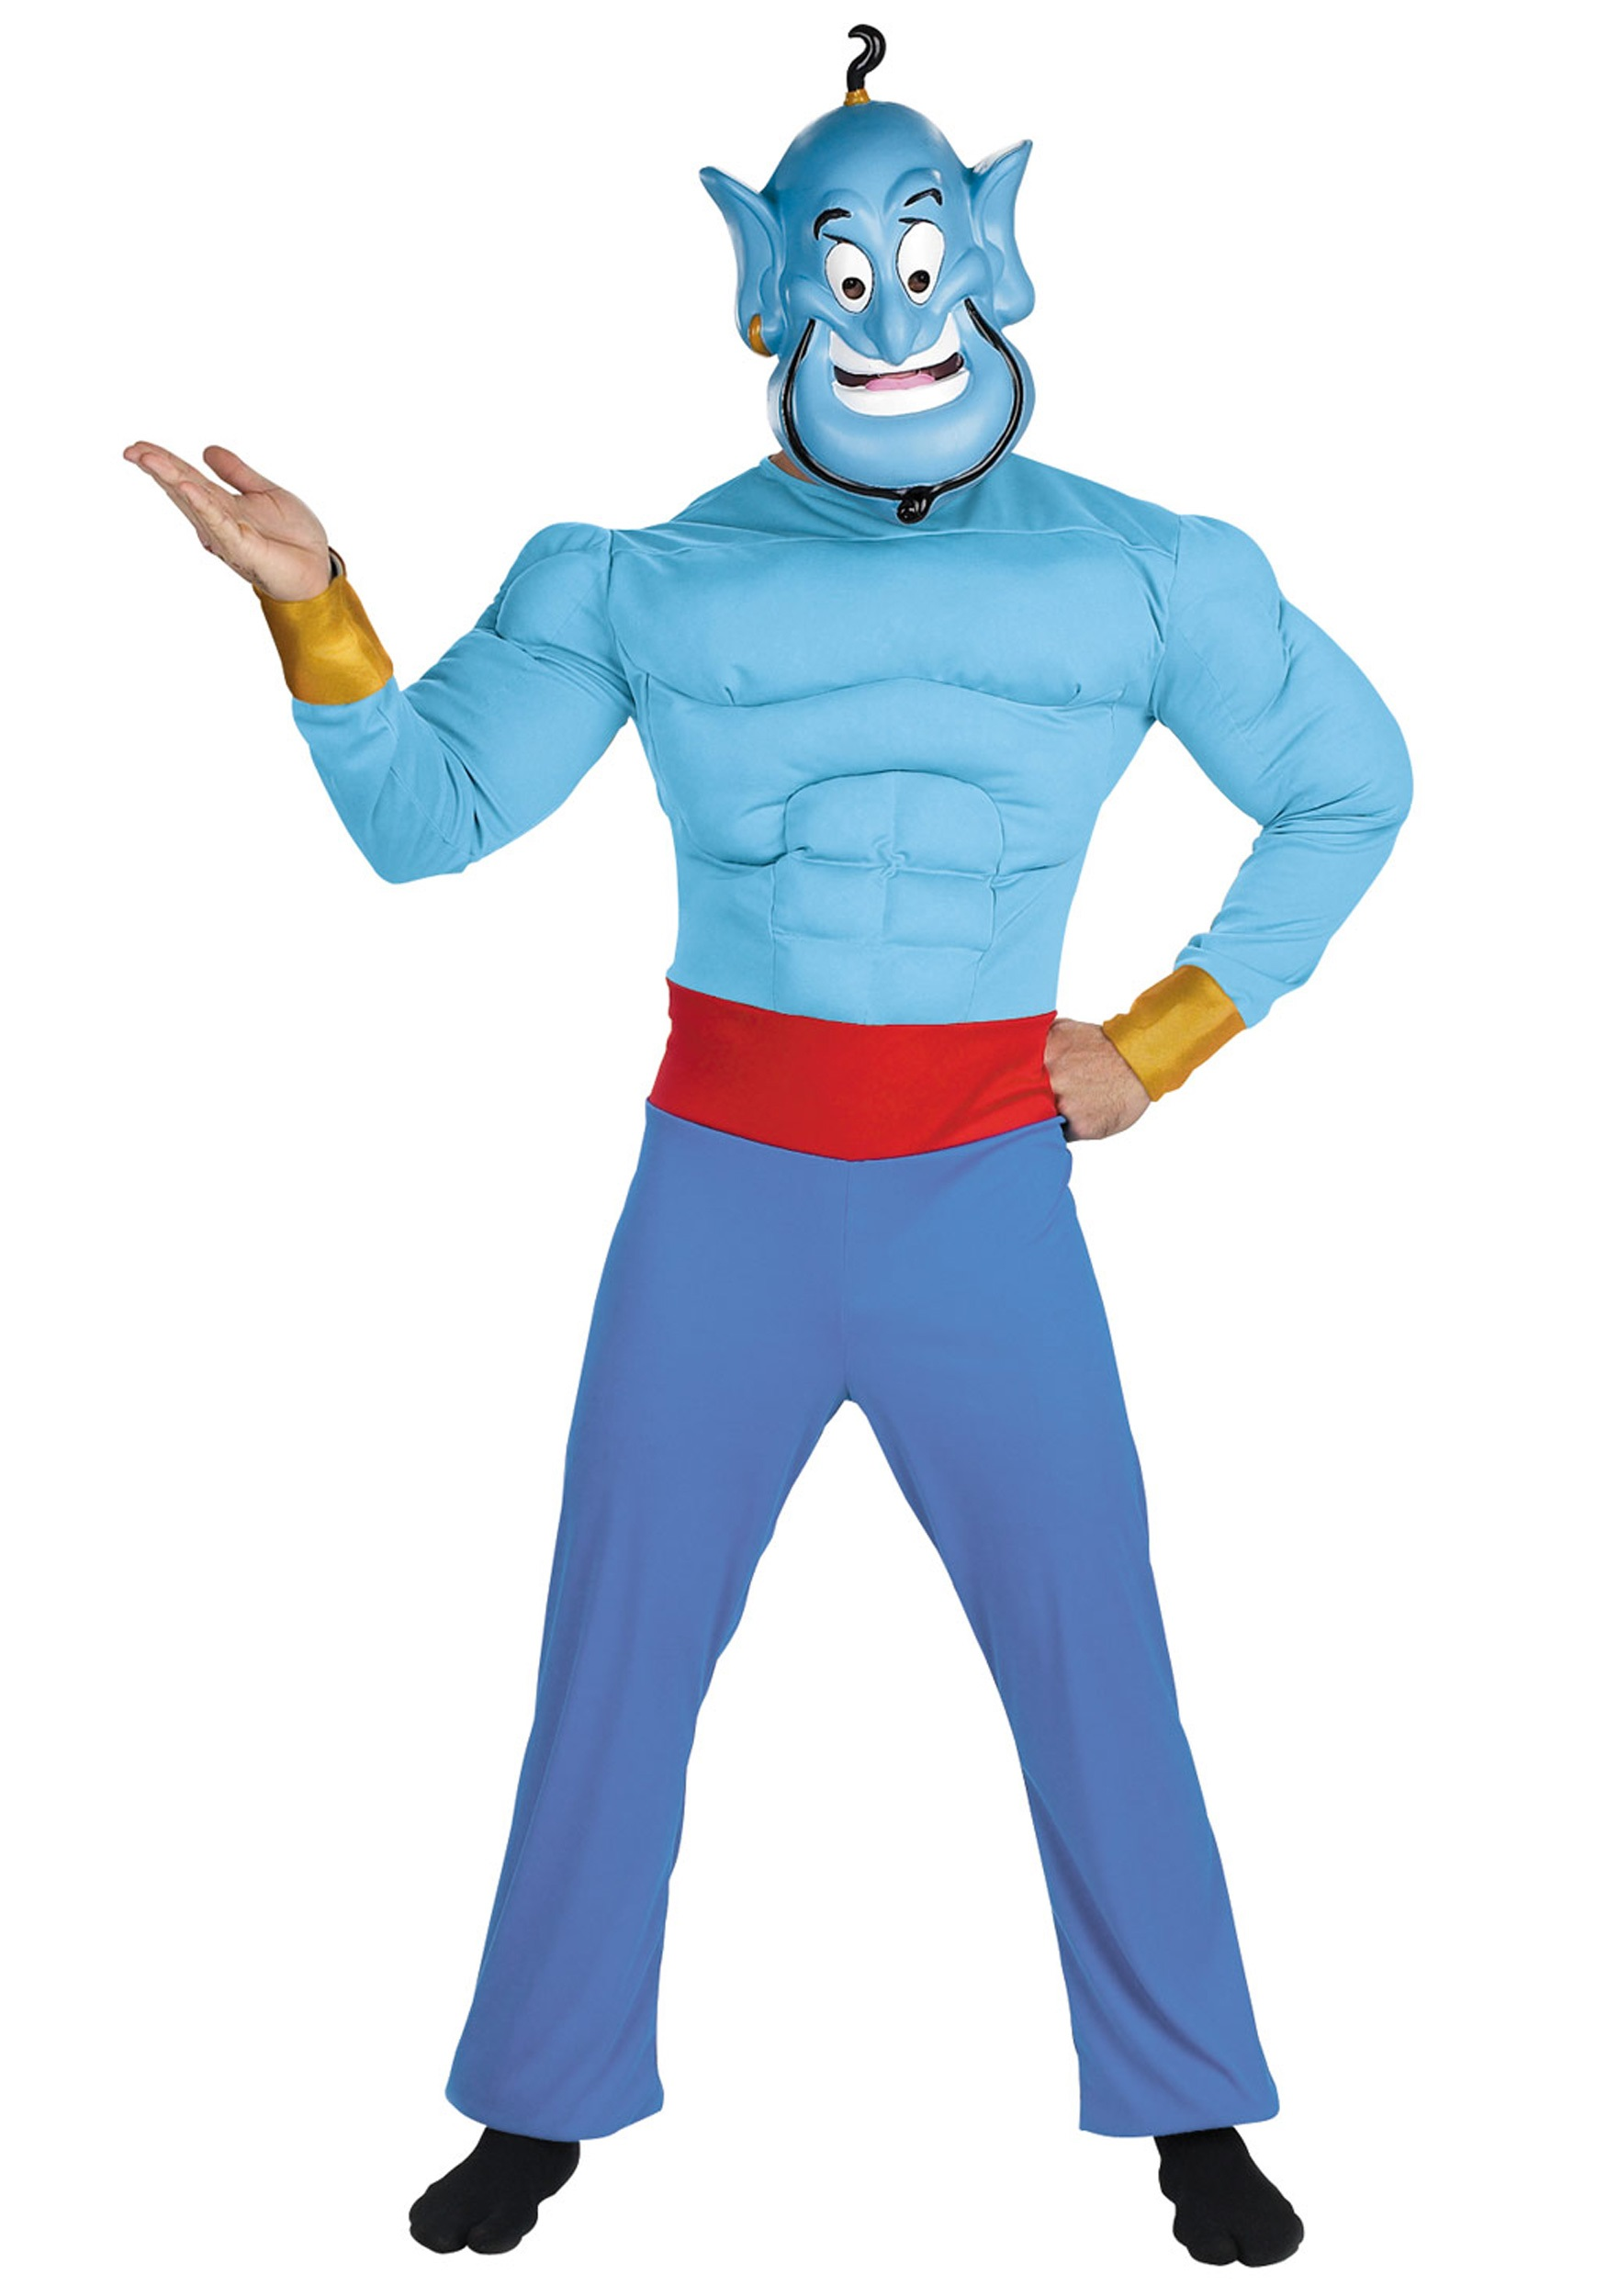 sc 1 st  Halloween Costumes : aladdin genie costume for kids  - Germanpascual.Com